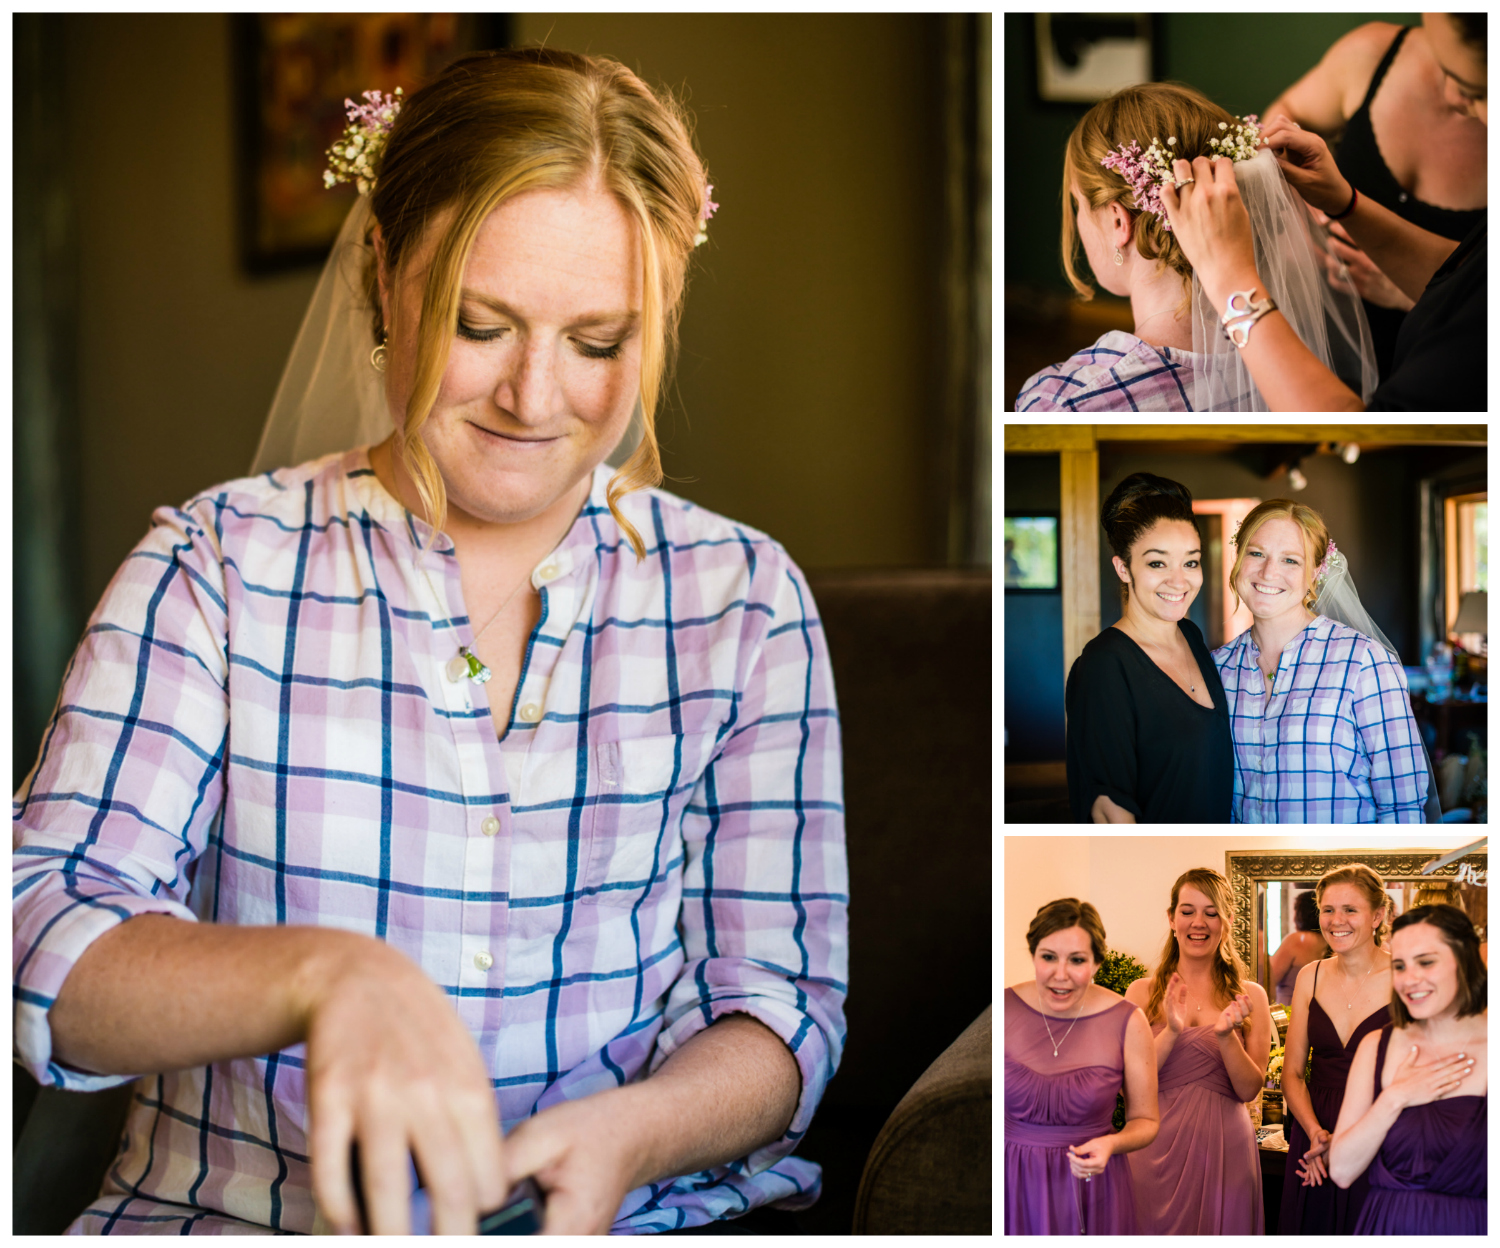 Bridal party preparation for their Deer Creek Valley Ranch Wedding. Photographed by JMGant Photography.